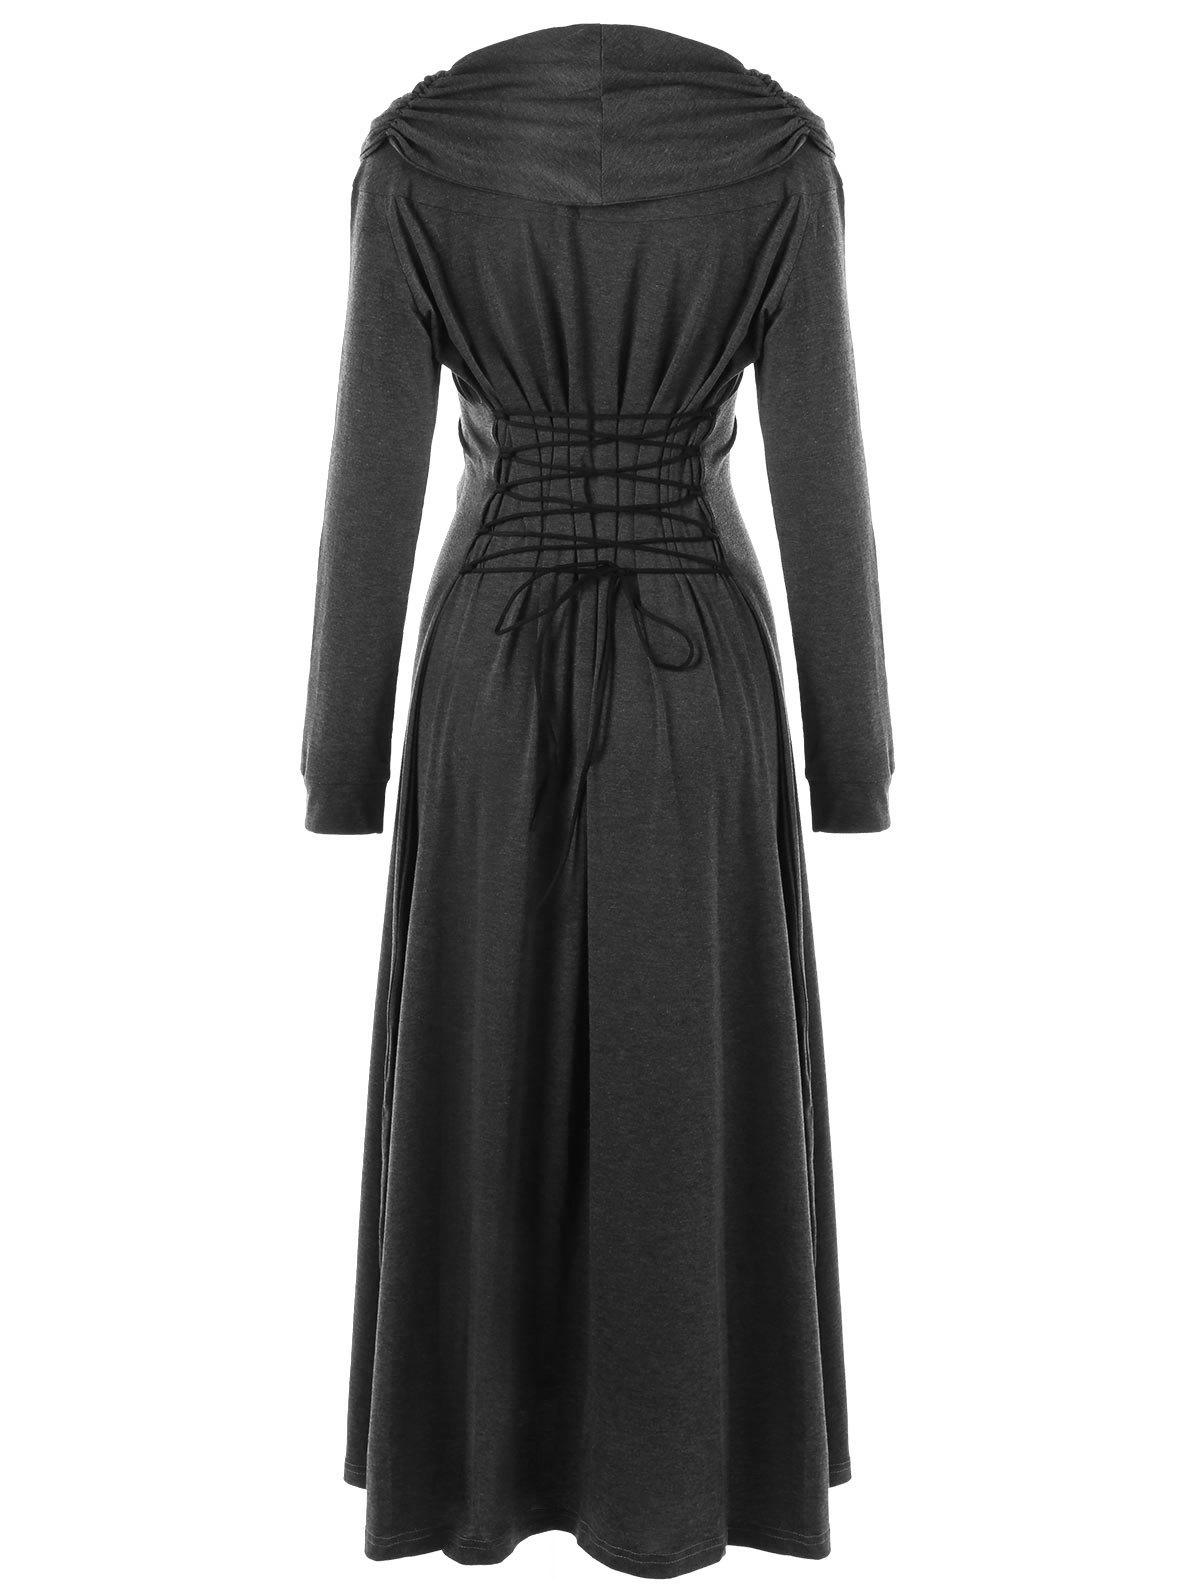 Lace Panel Lace Up Maxi DressWOMEN<br><br>Size: 2XL; Color: DEEP GRAY; Style: Novelty; Material: Polyester,Spandex; Silhouette: A-Line; Dresses Length: Ankle-Length; Neckline: Cowl Neck; Sleeve Length: Long Sleeves; Pattern Type: Solid Color; With Belt: No; Season: Fall,Spring; Weight: 0.6400kg; Package Contents: 1 x Dress;